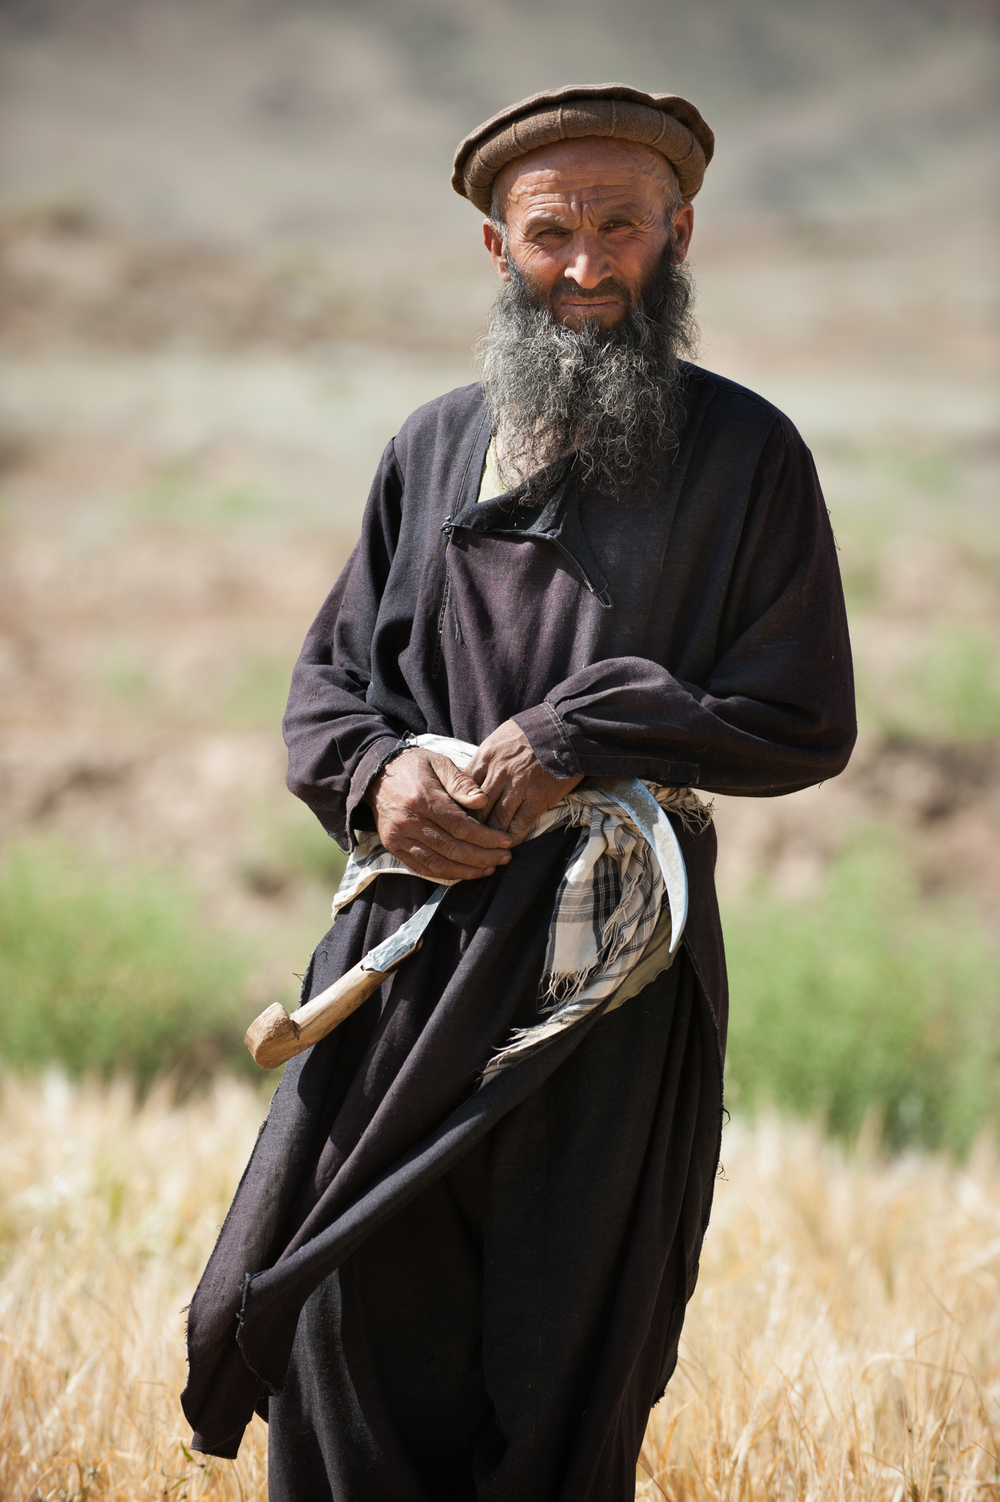 Wheat farmer in the Panjshir Valley _DSC6328.jpg